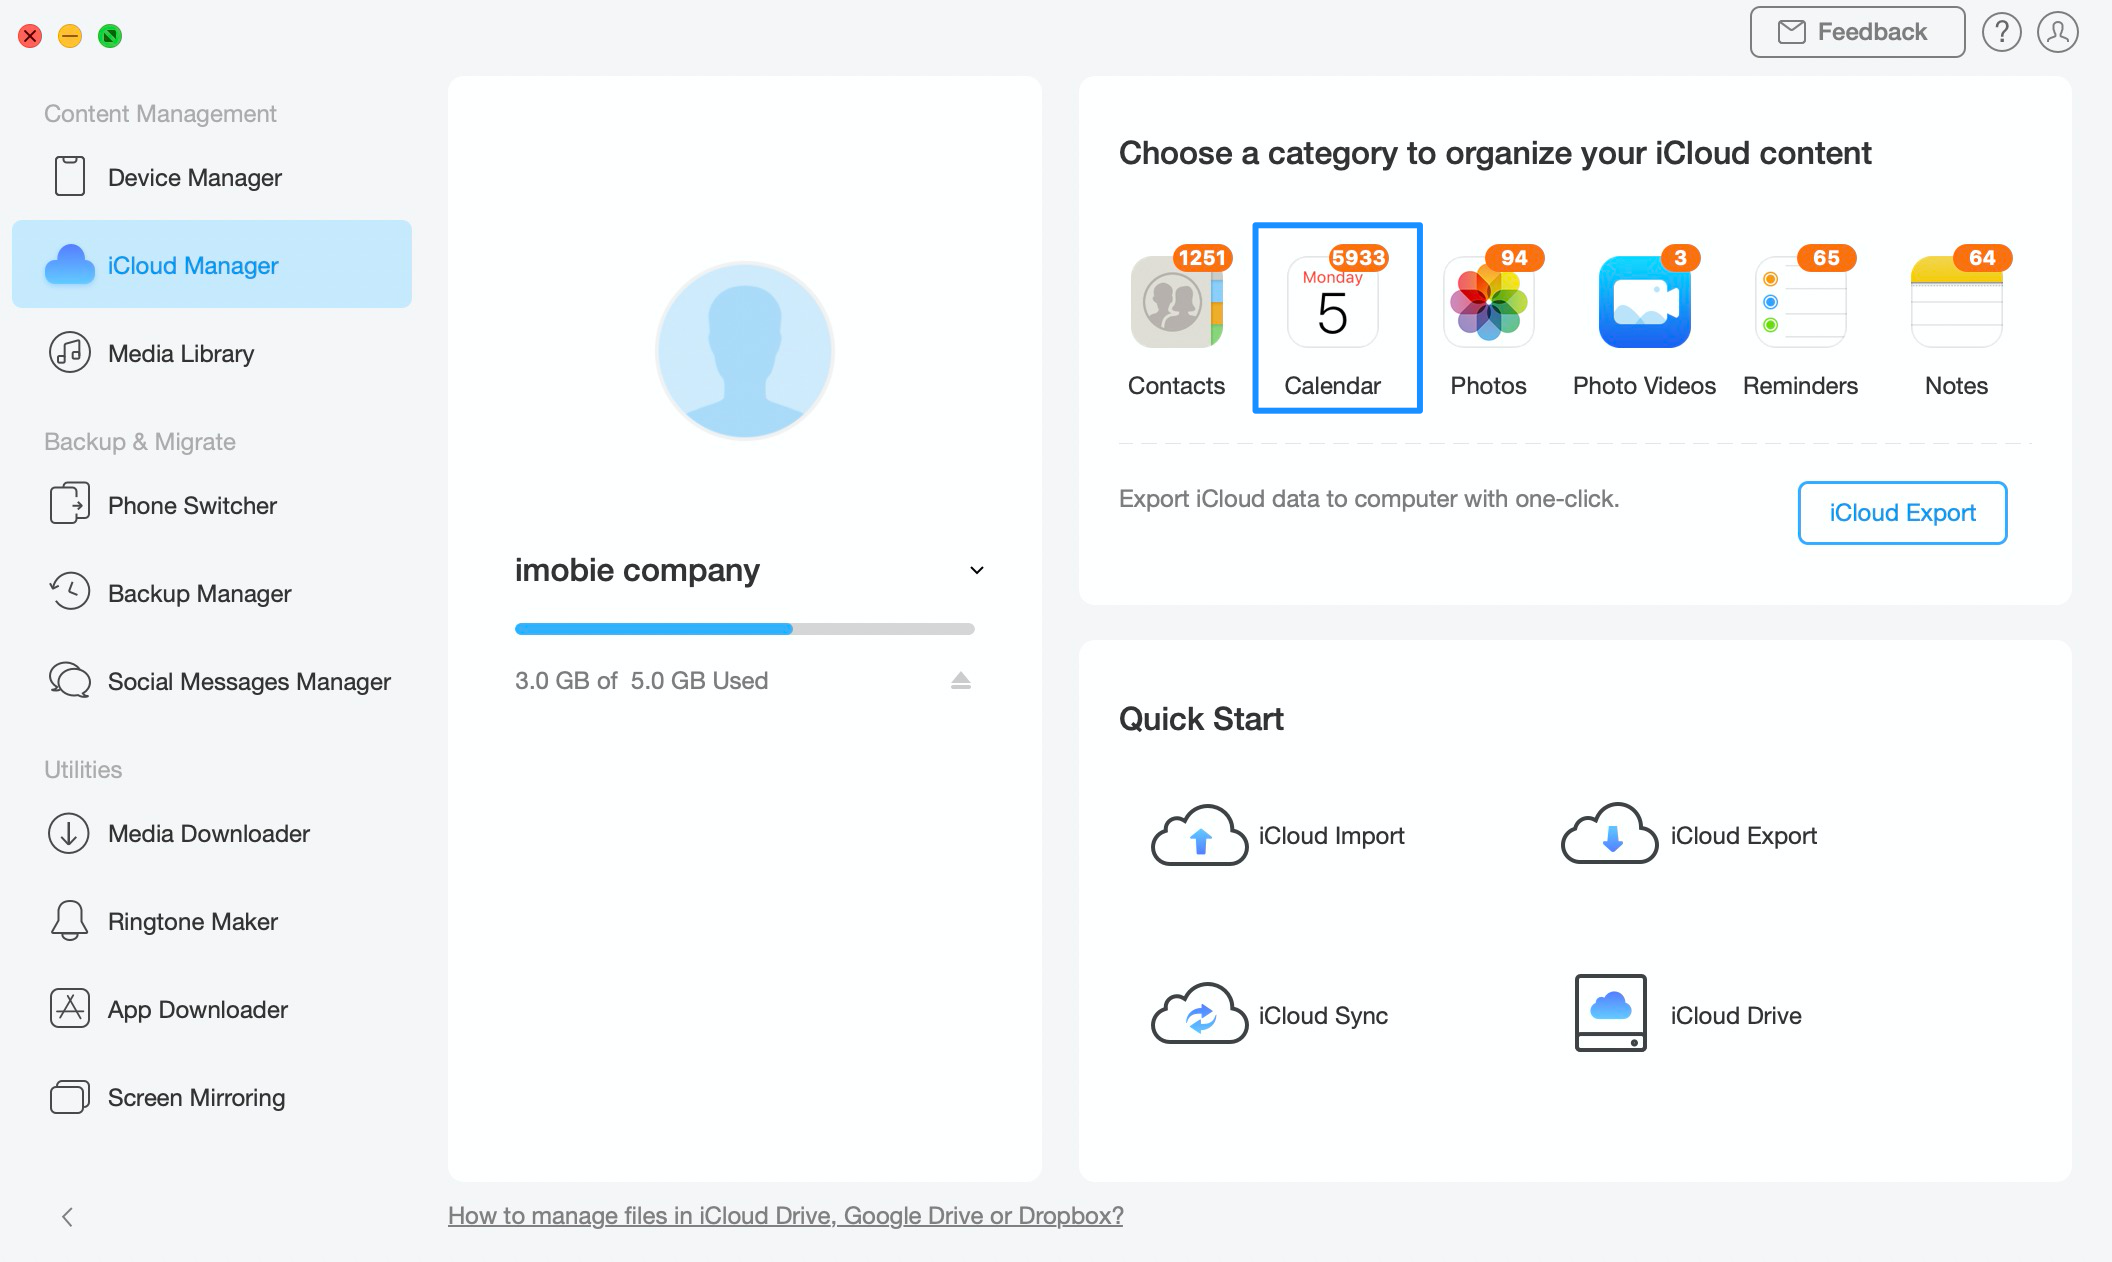 View iCloud Calendar in Google with AnyTrans - Step 2